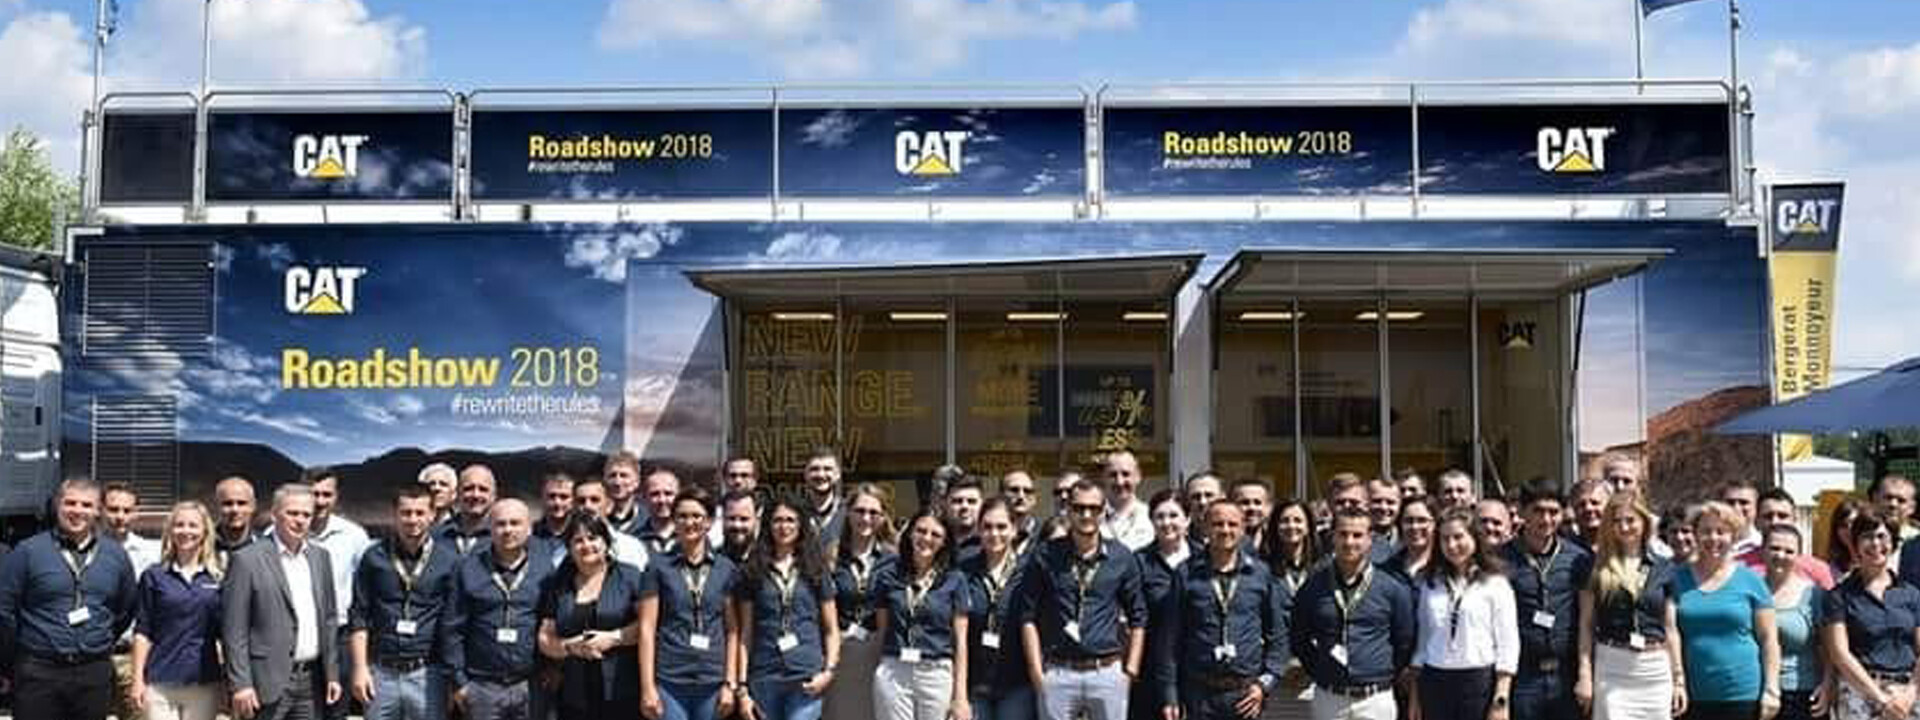 Caterpillar Roadshow Team